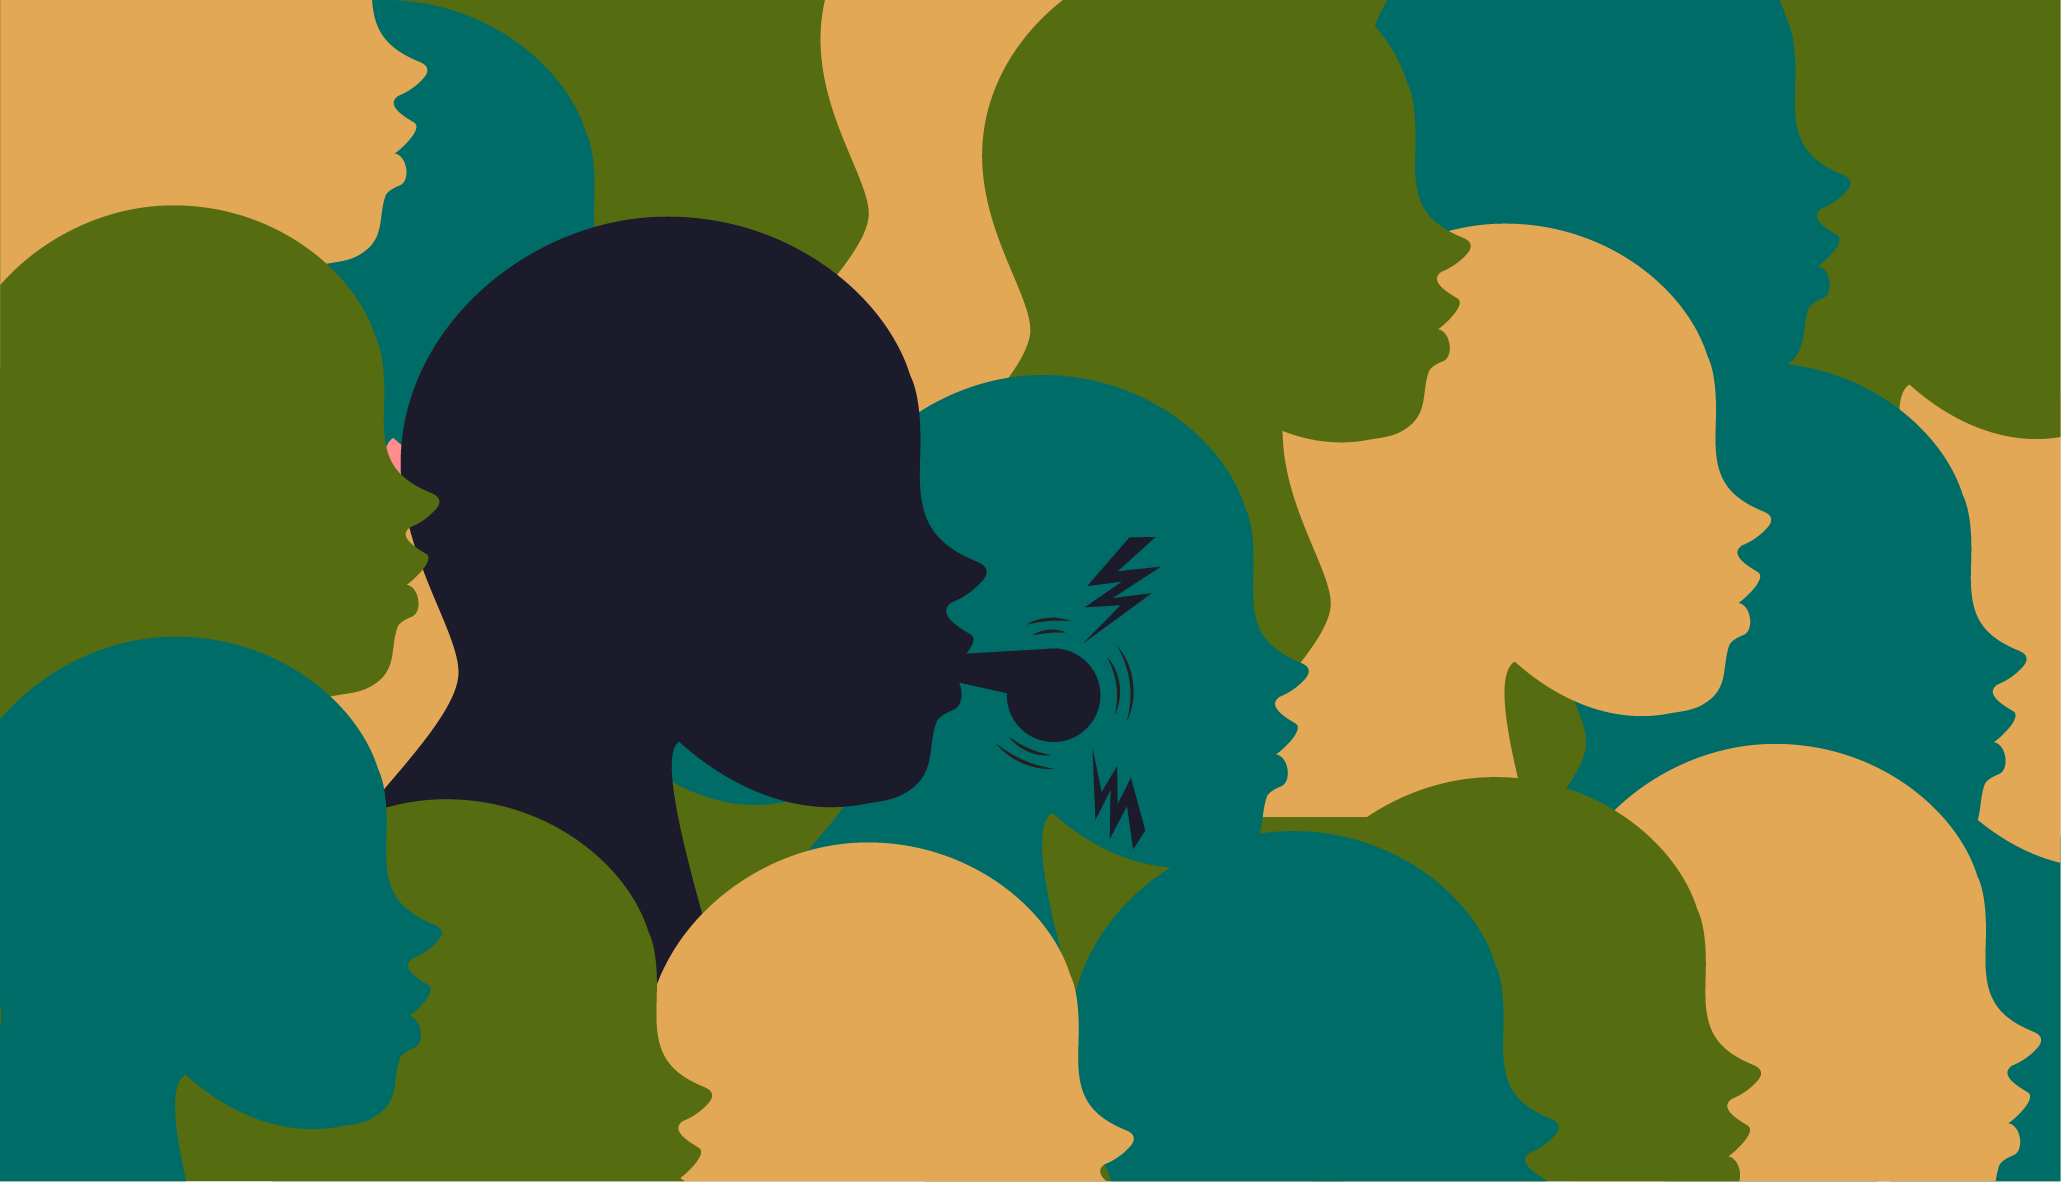 Overlapping silhouettes of faces in green, yellow, and blue with a prominent silhouette in black blowing a whistle